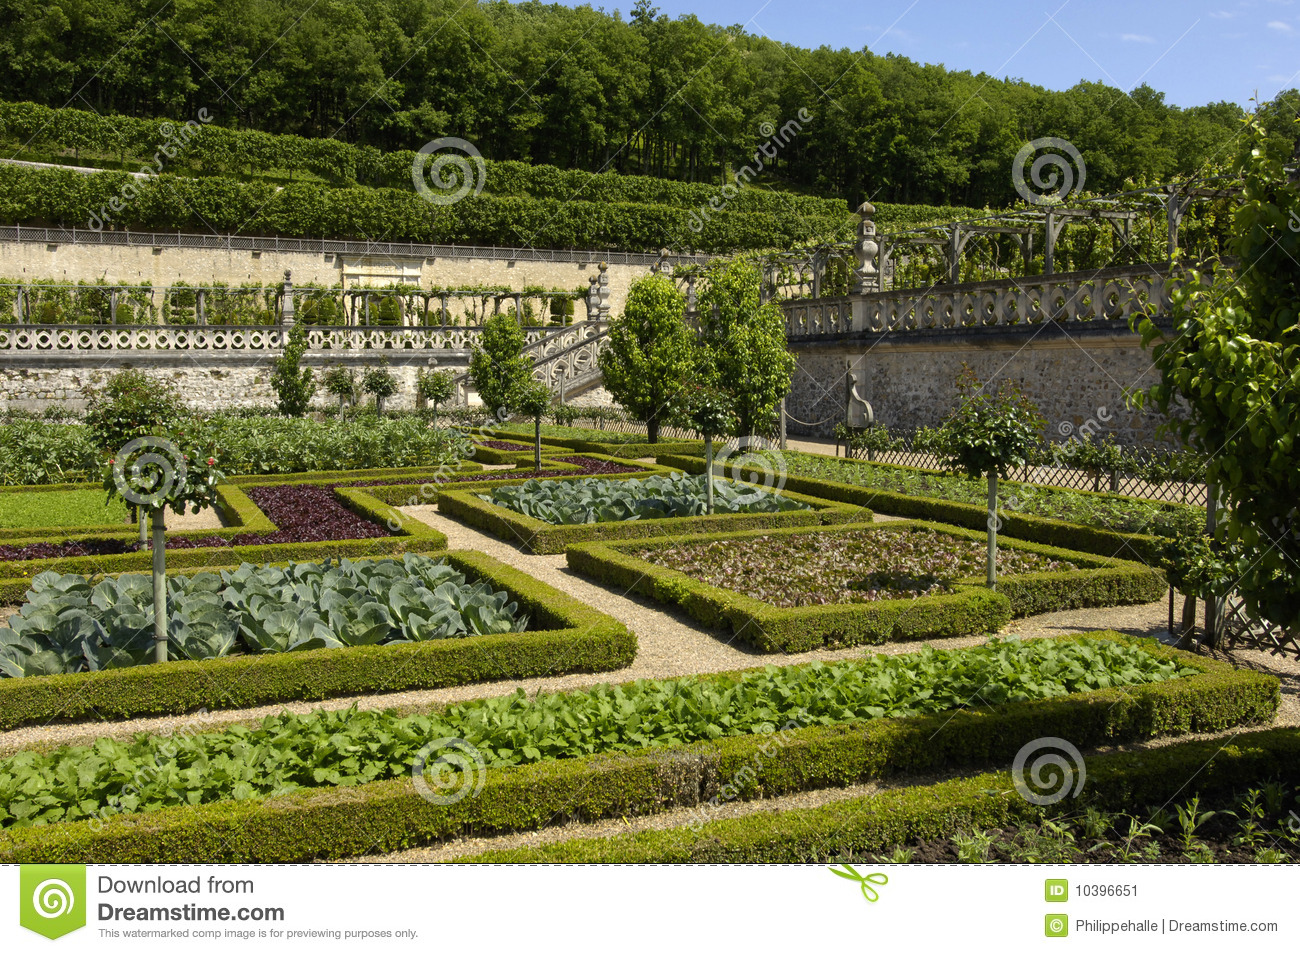 French country gardens - French Gardens Viewing Gallery